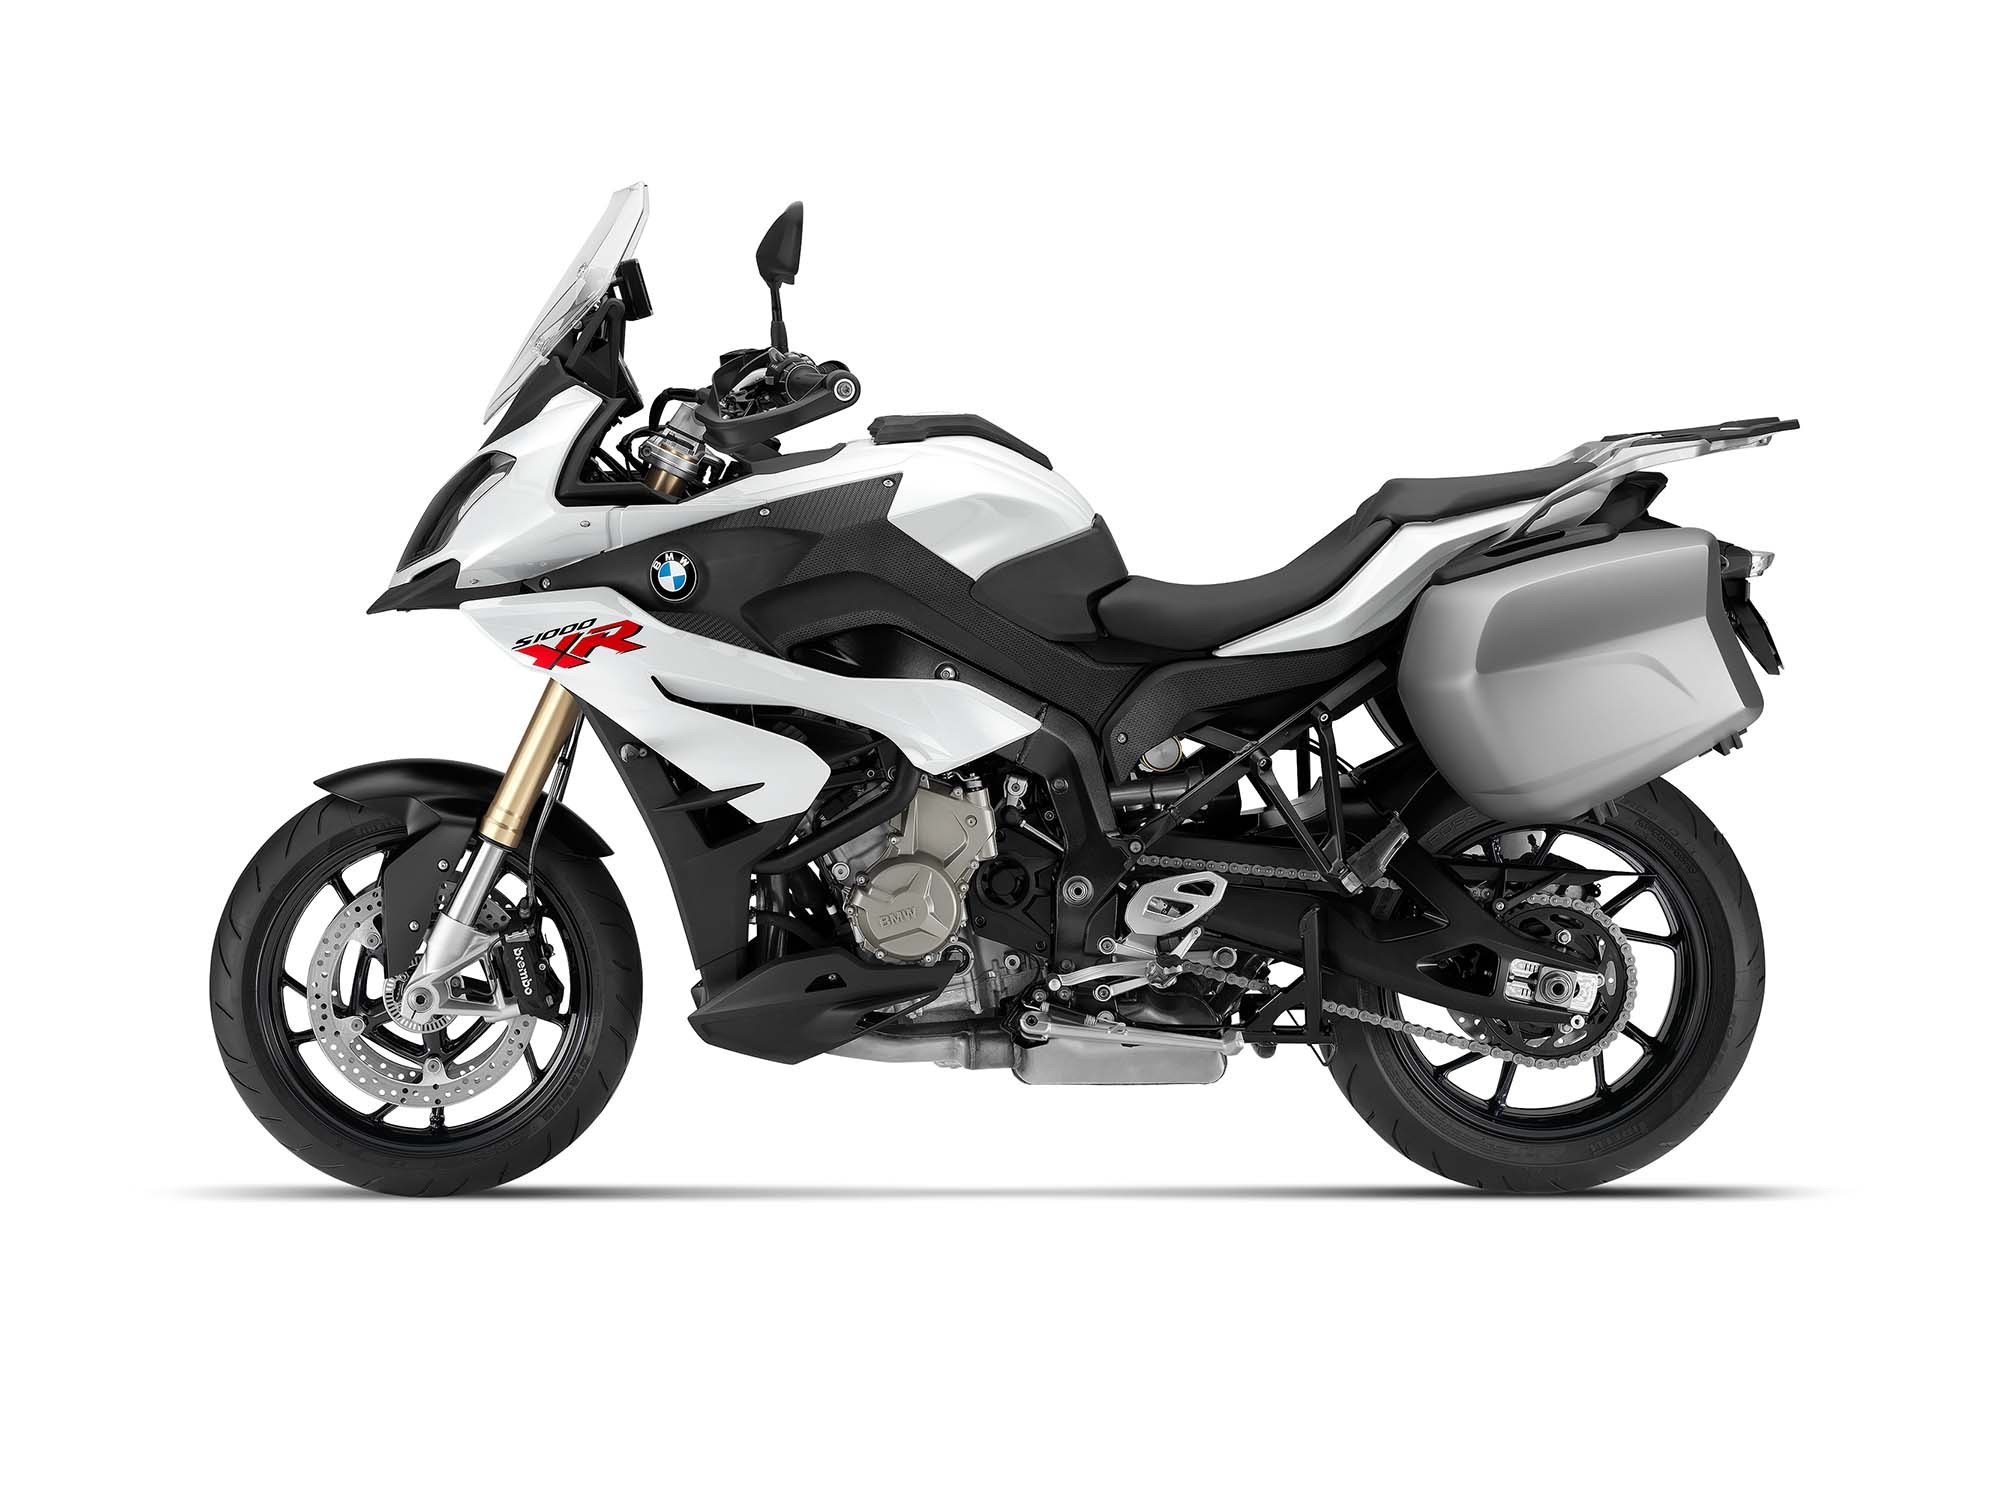 bmw debuts s 1000 xr adventure sport motorcycledaily. Black Bedroom Furniture Sets. Home Design Ideas